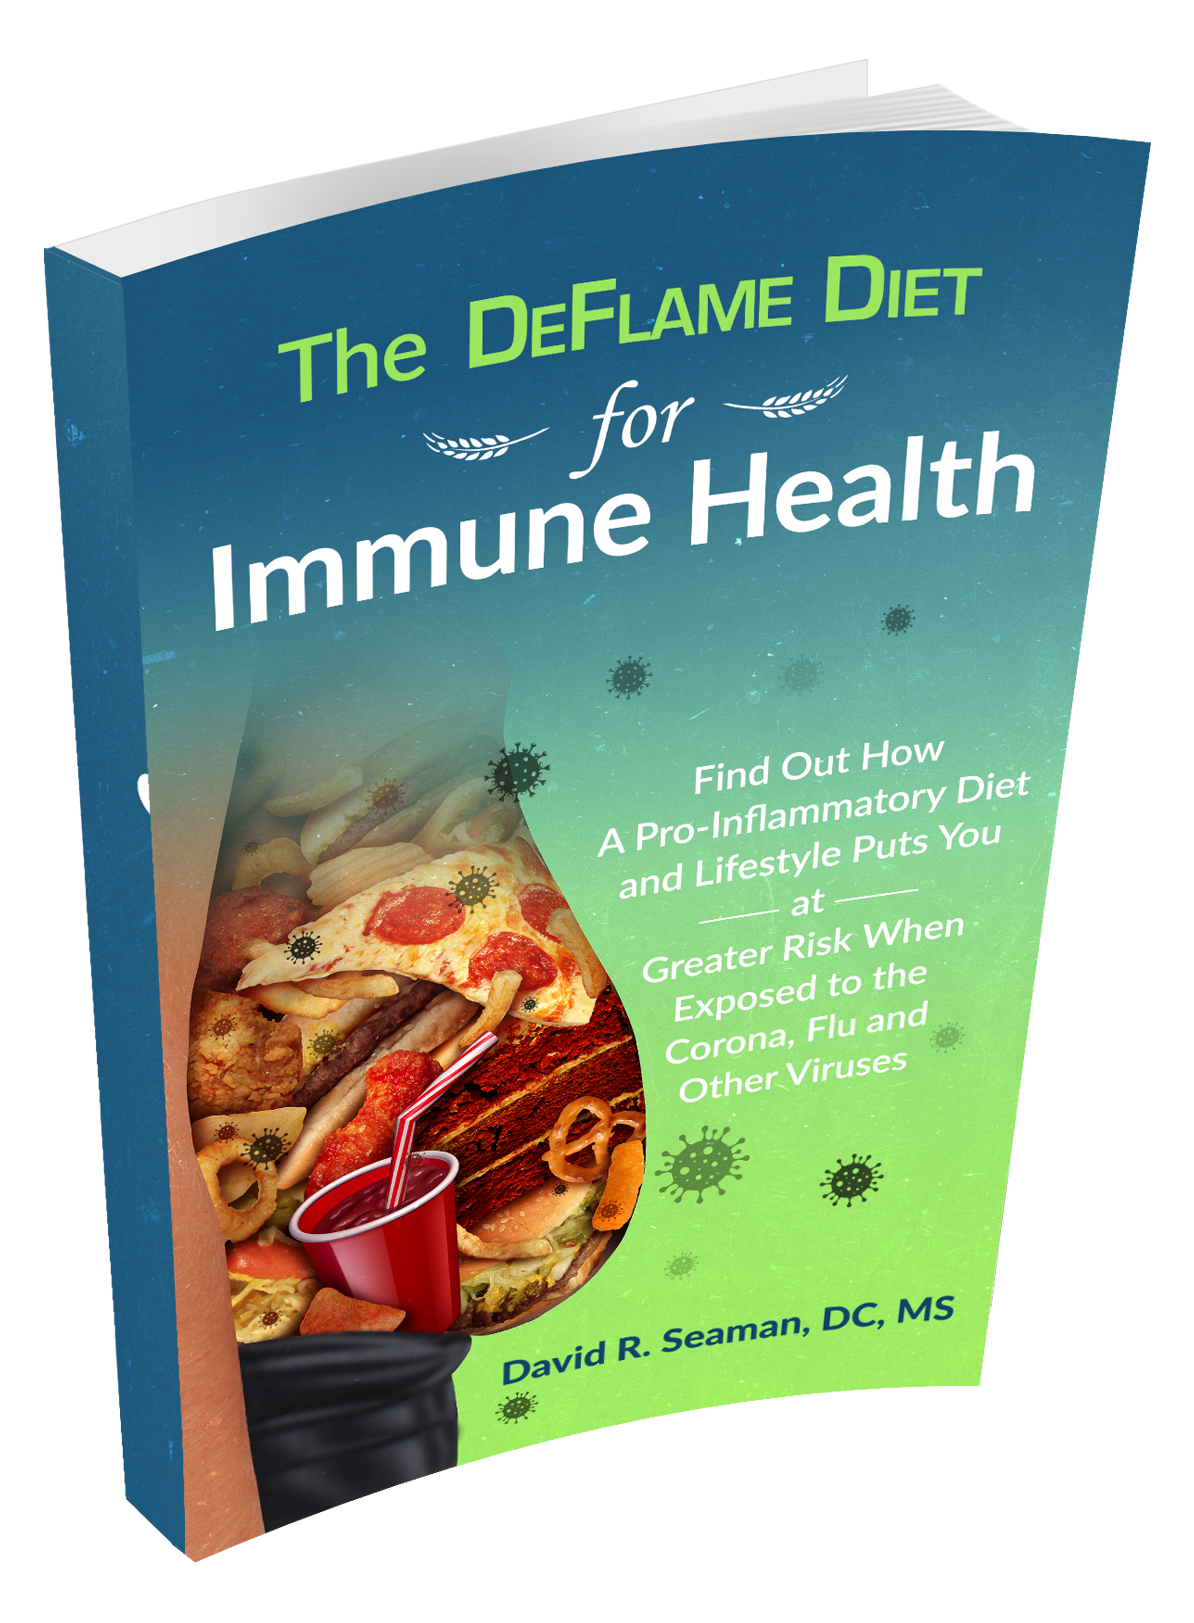 Deflame diet for immune health